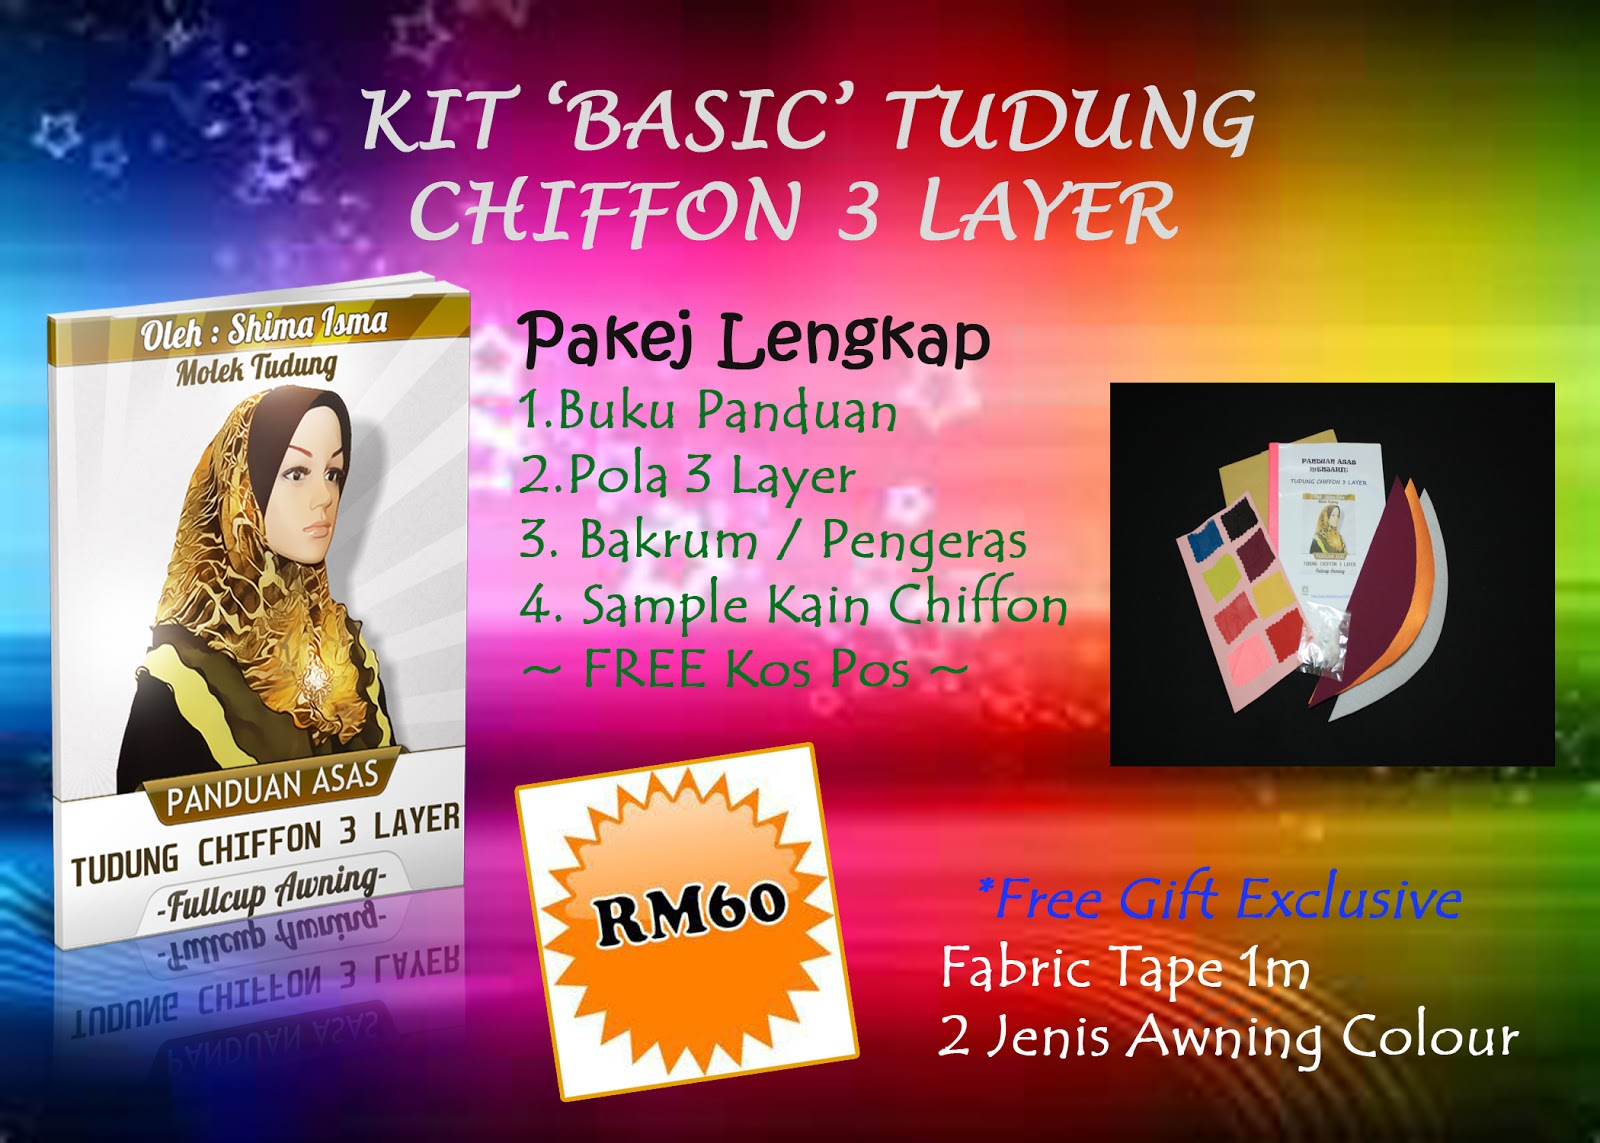 KIT TUDUNG CHIFFON LAYER